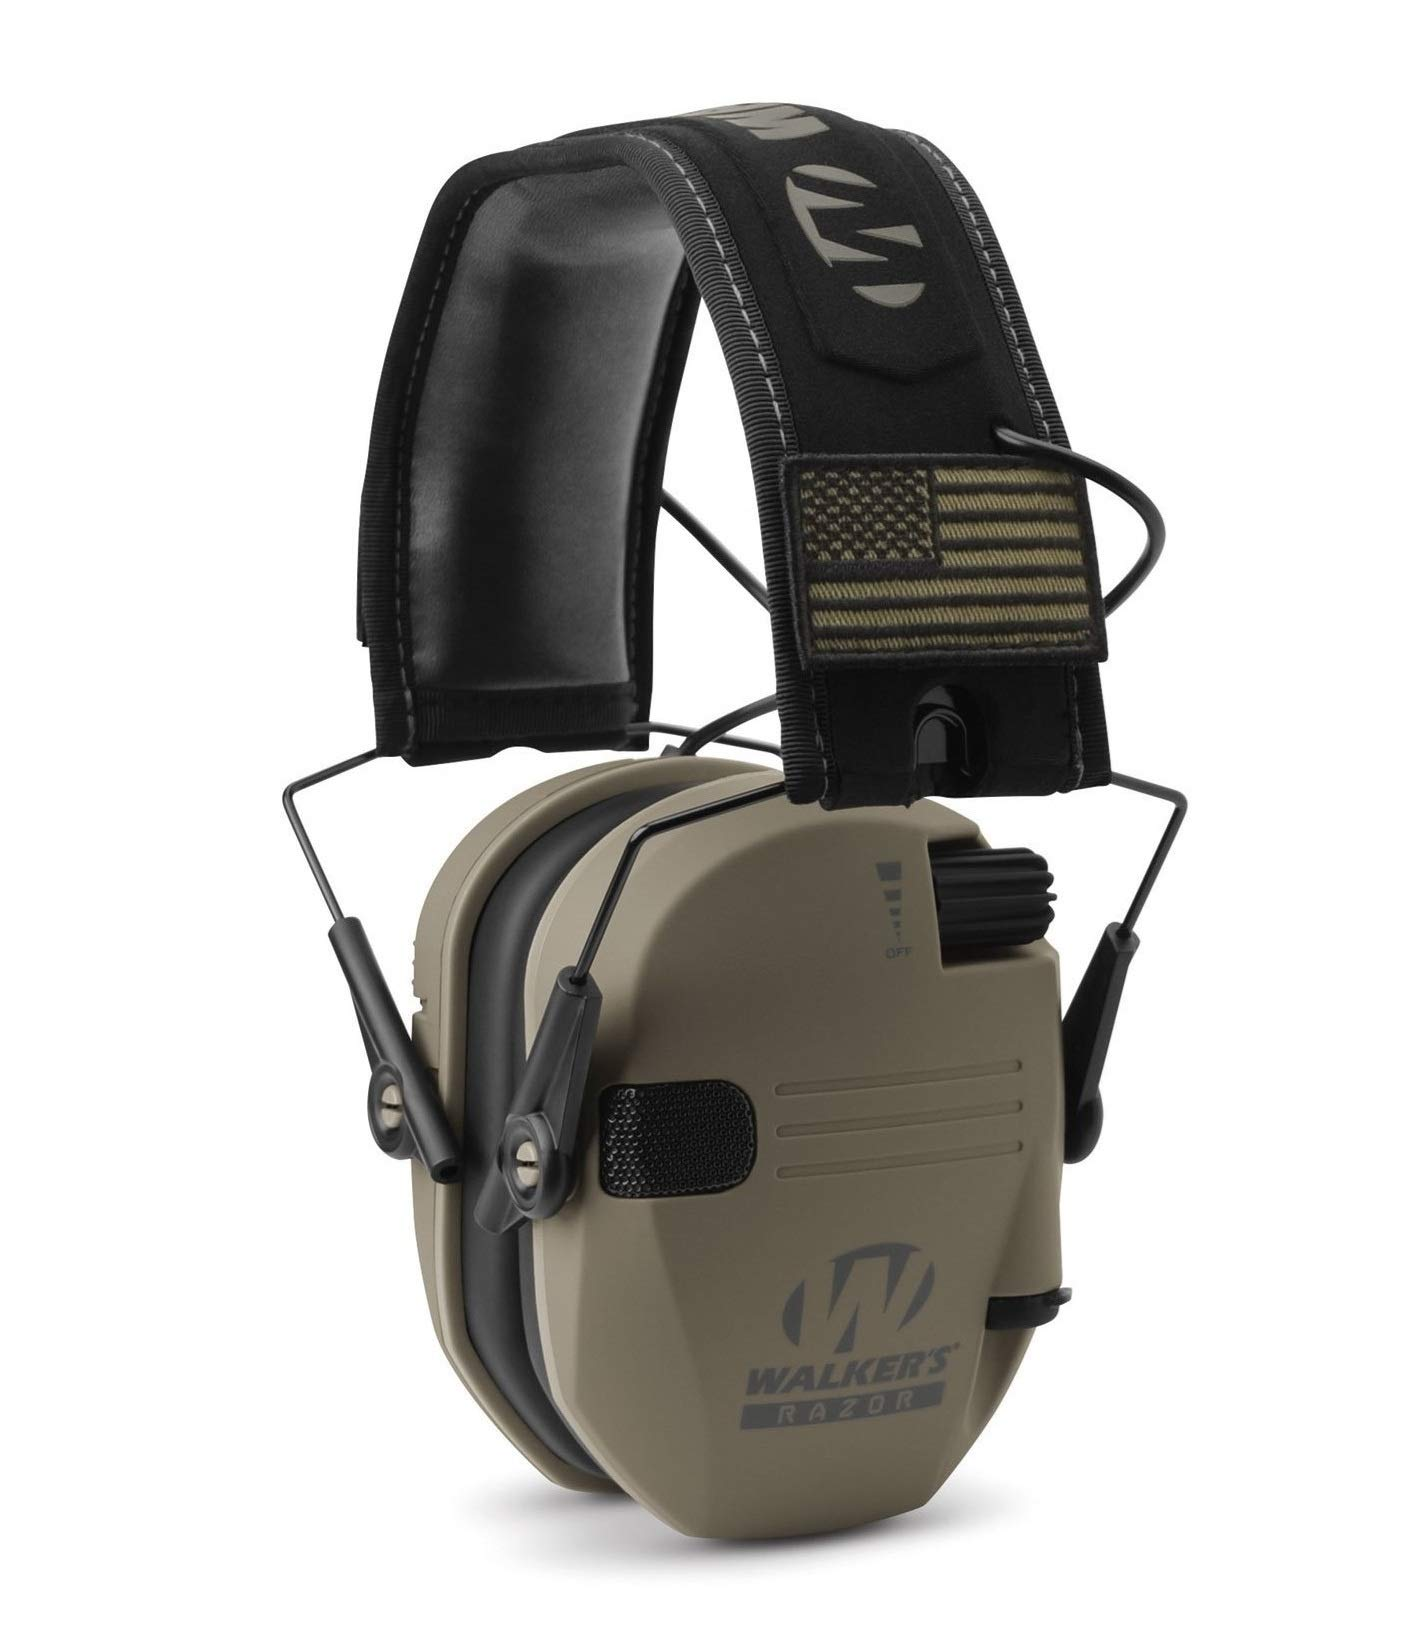 Walkers Razor Slim Electronic Shooting Hearing Protection Muff (Sound Amplification and Suppression) with Protective Case, FDE Patriot by Walkers (Image #3)